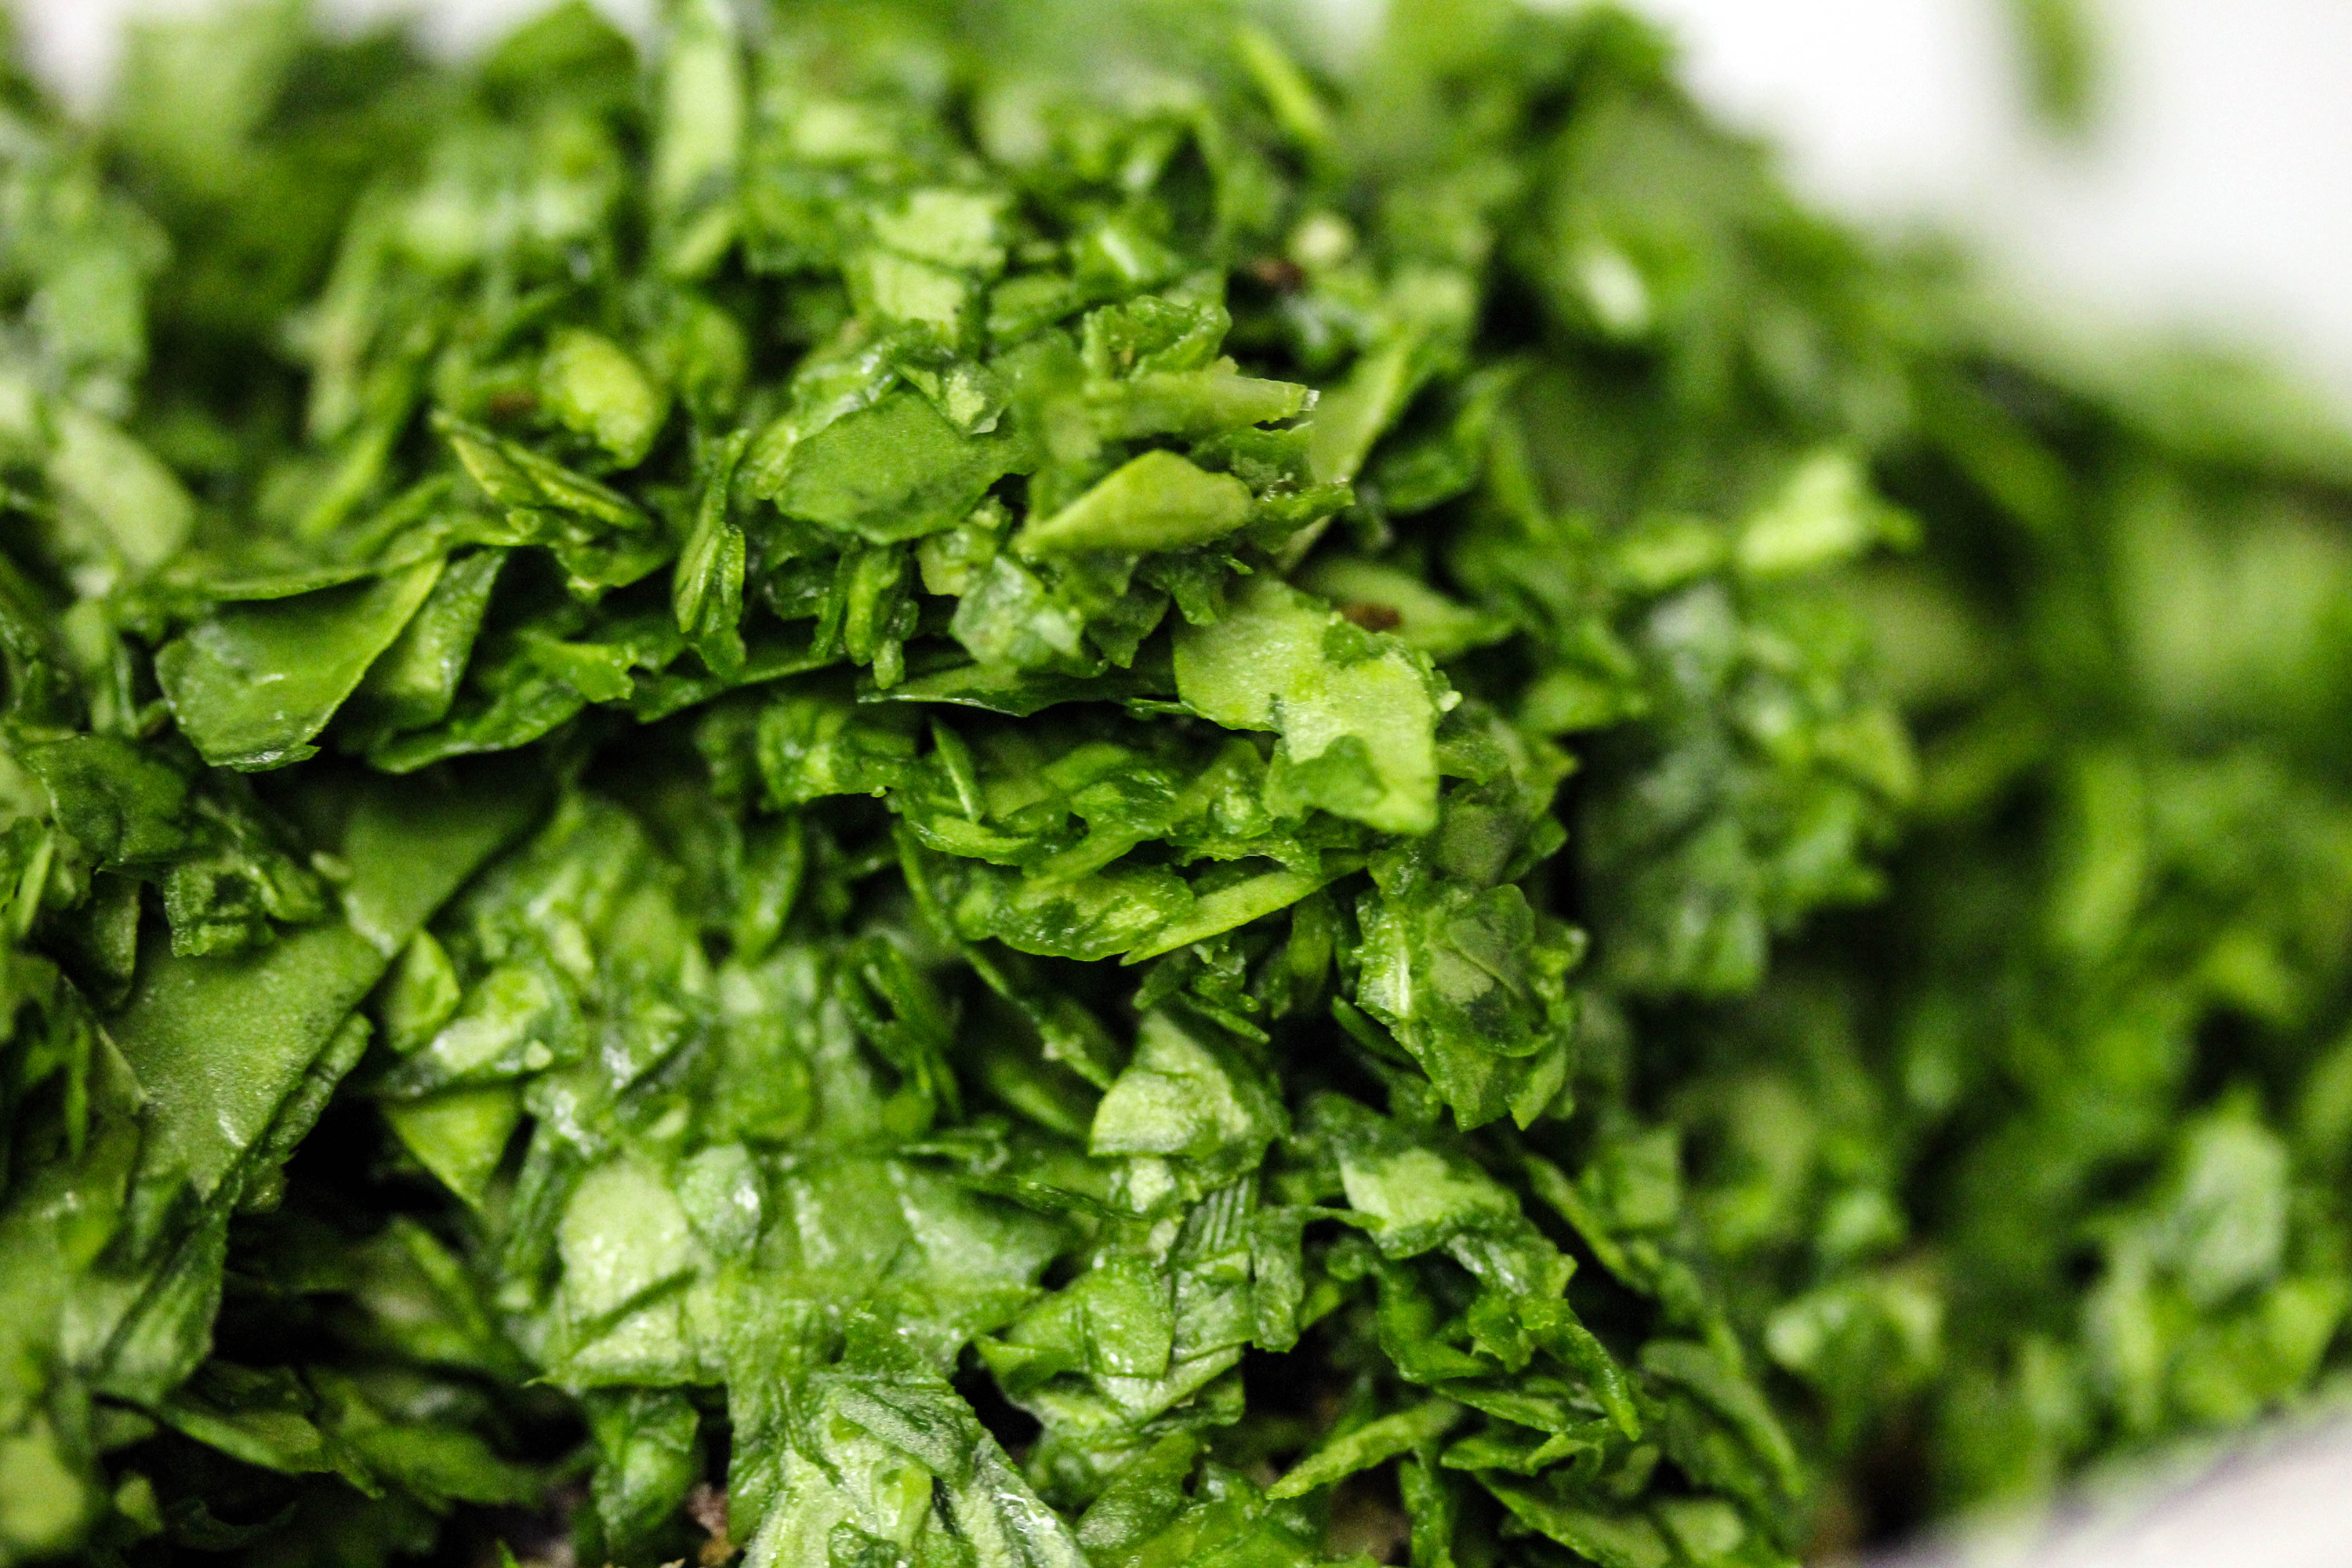 Chop spinach, either with a knife or in a food processor